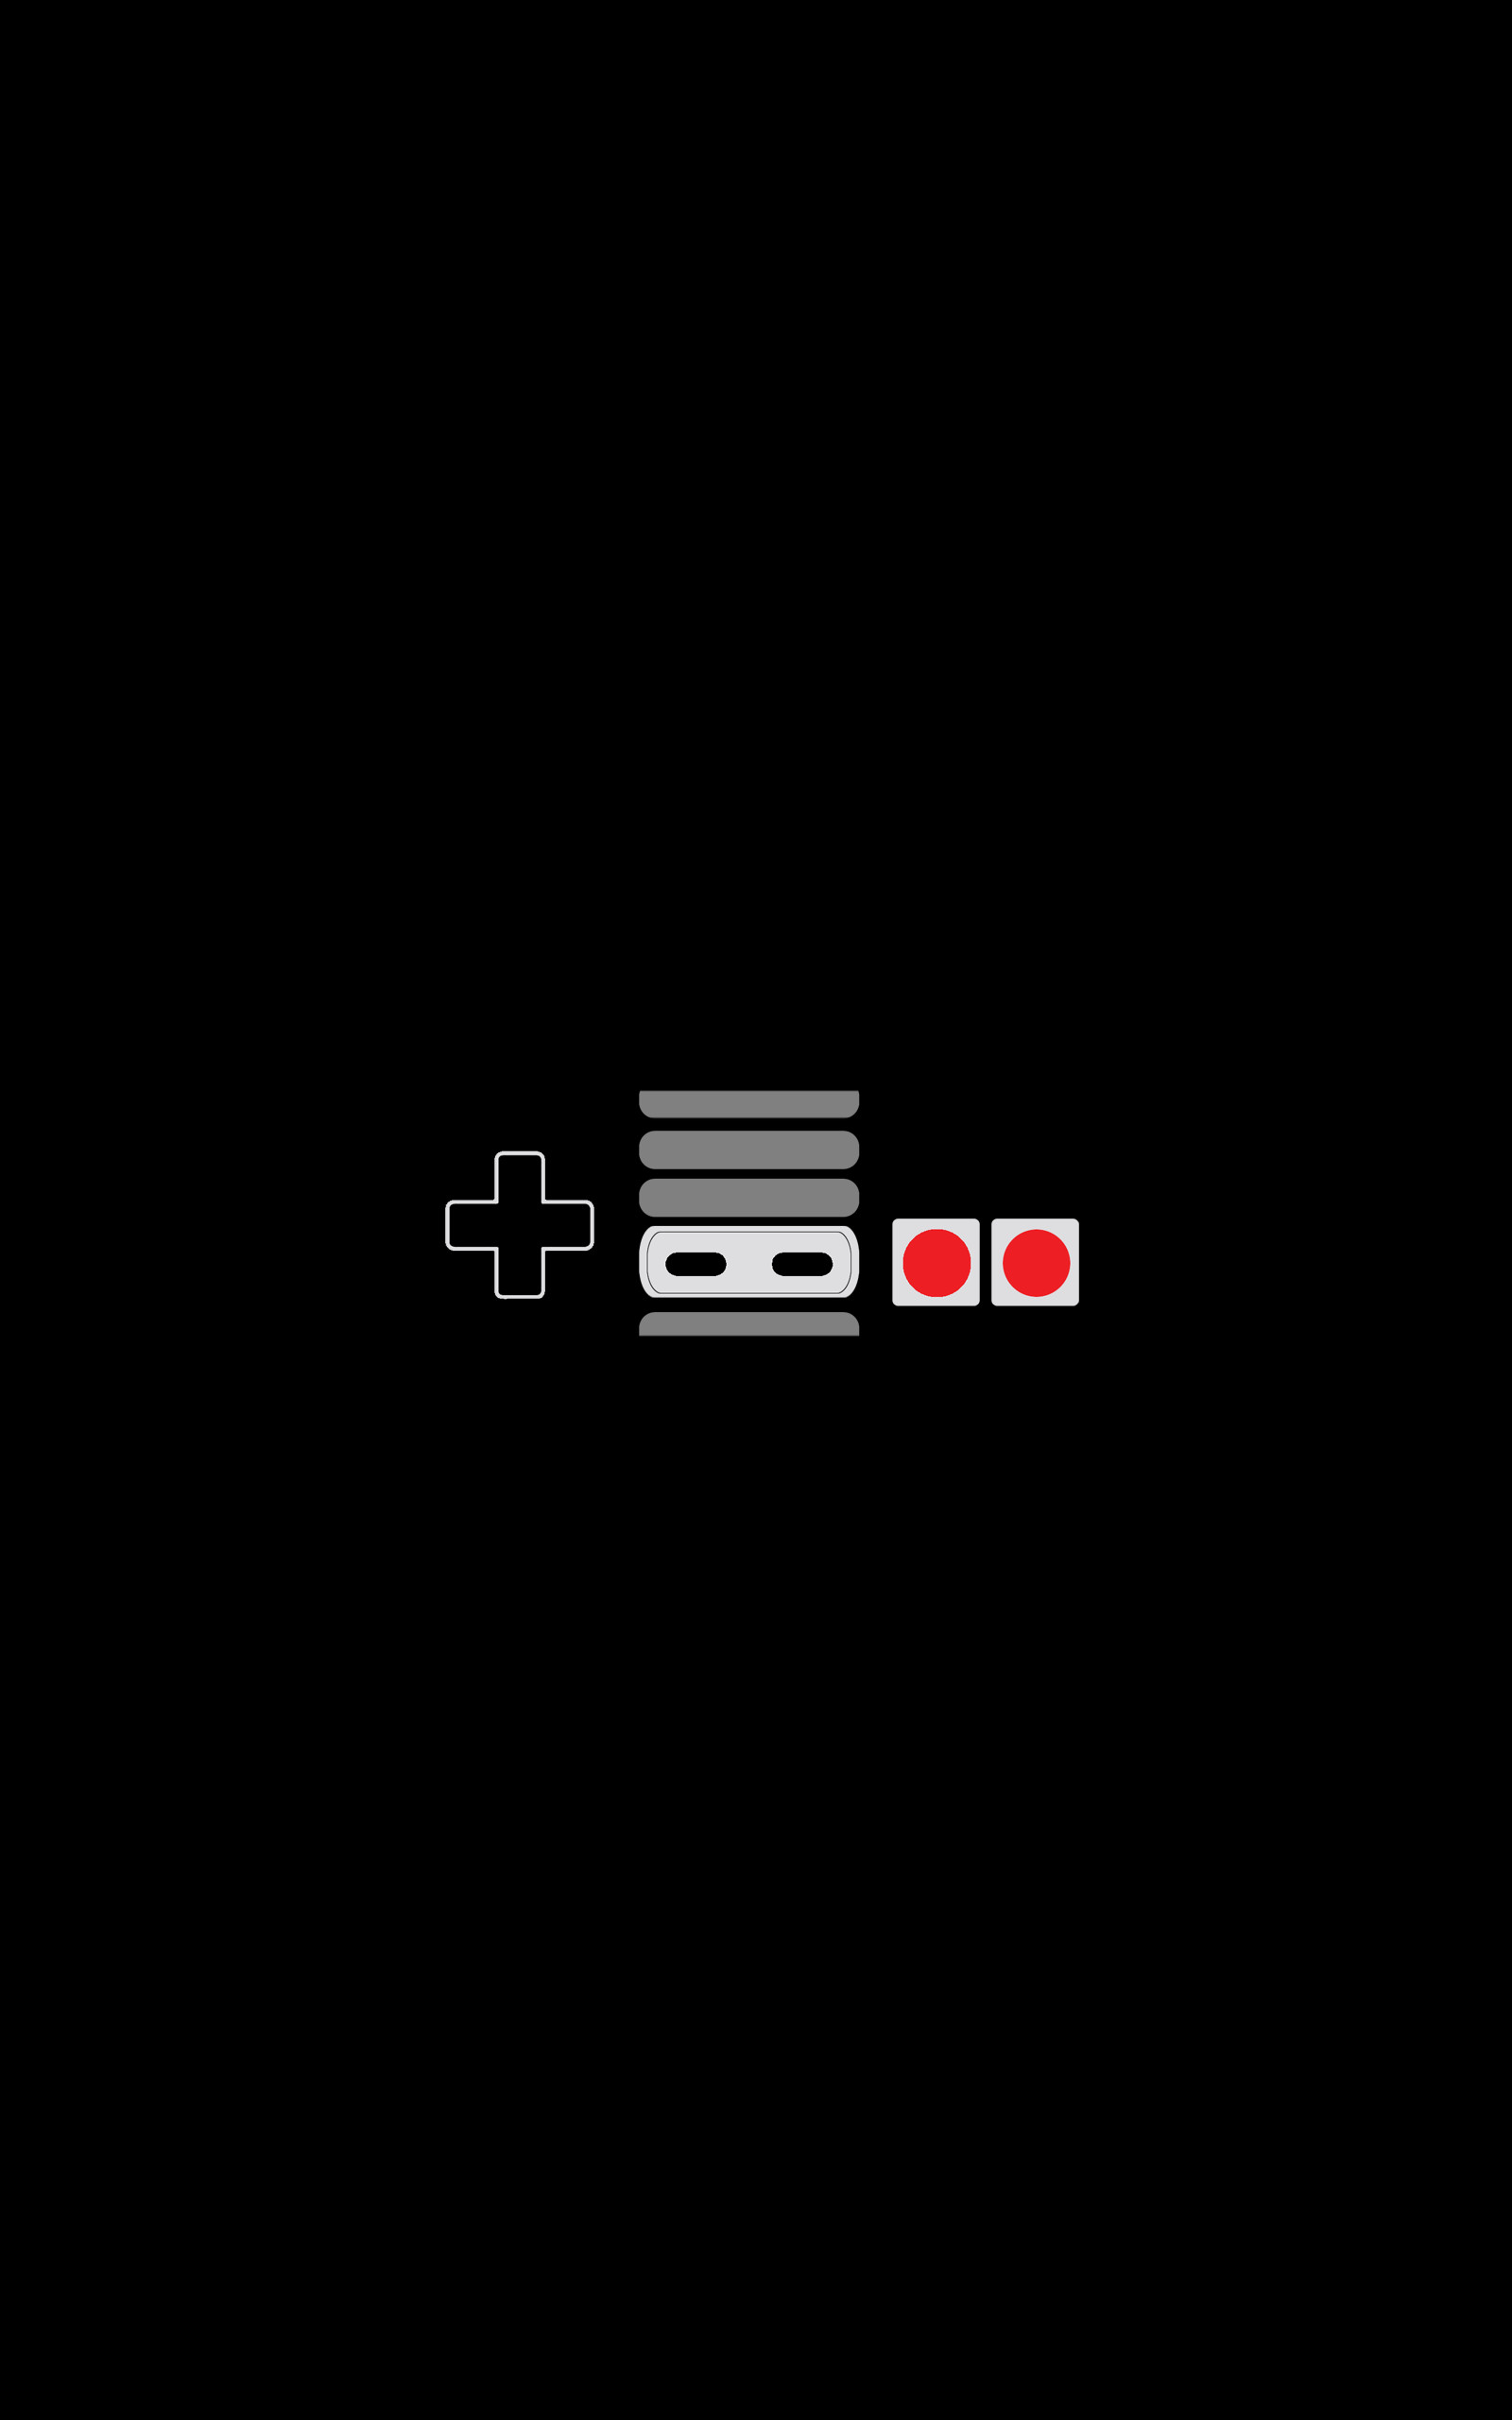 Res: 1600x2560, M.F. Backgrounds: Stunning Minimalist Gaming Wallpapers, Dewey Inoue